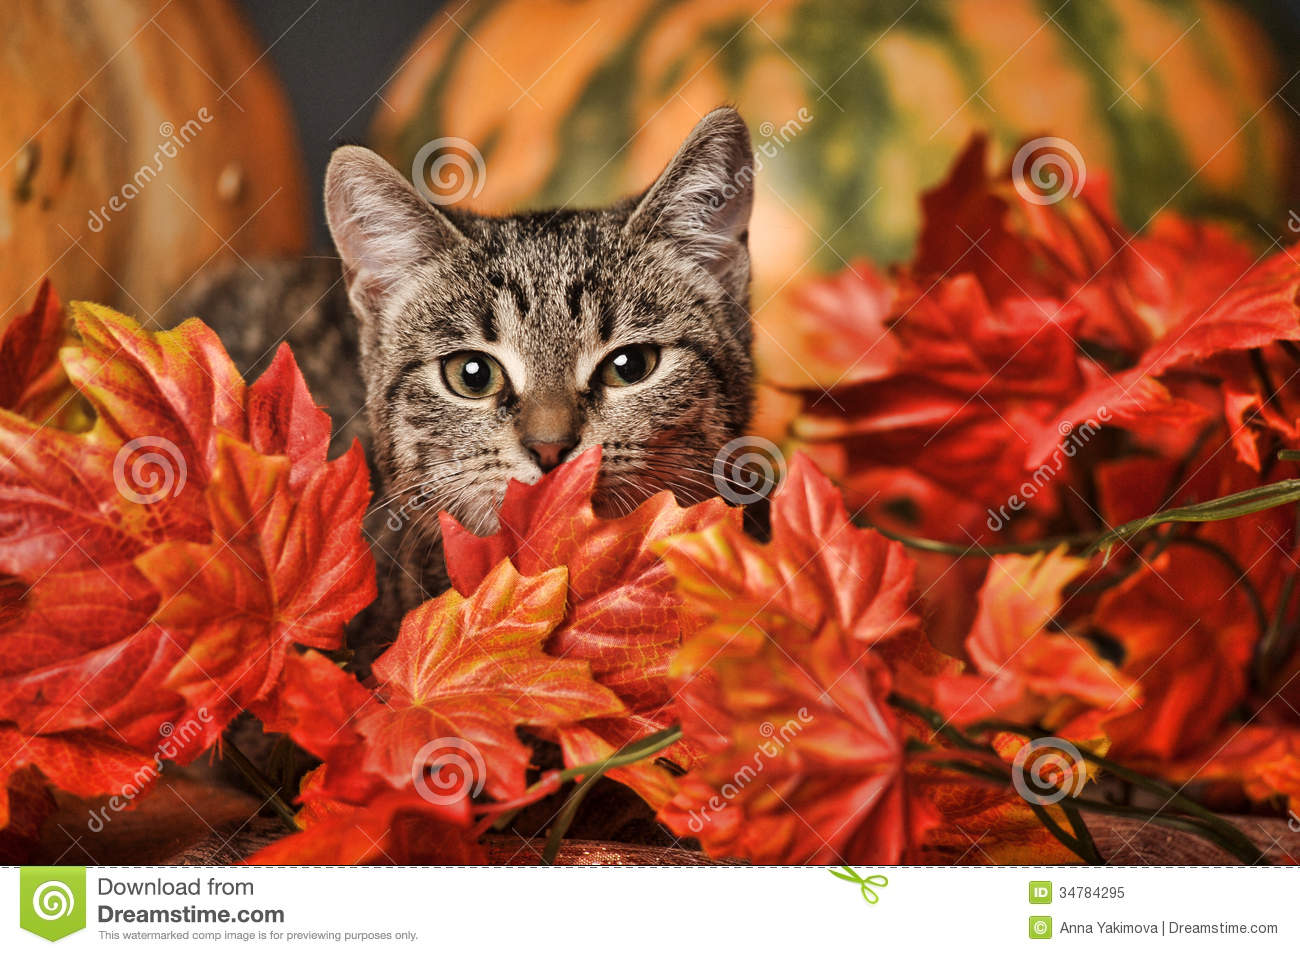 Cute Cat With Good Morning Wallpaper Autumn Cat Stock Image Image Of Dramatic Falling Beauty